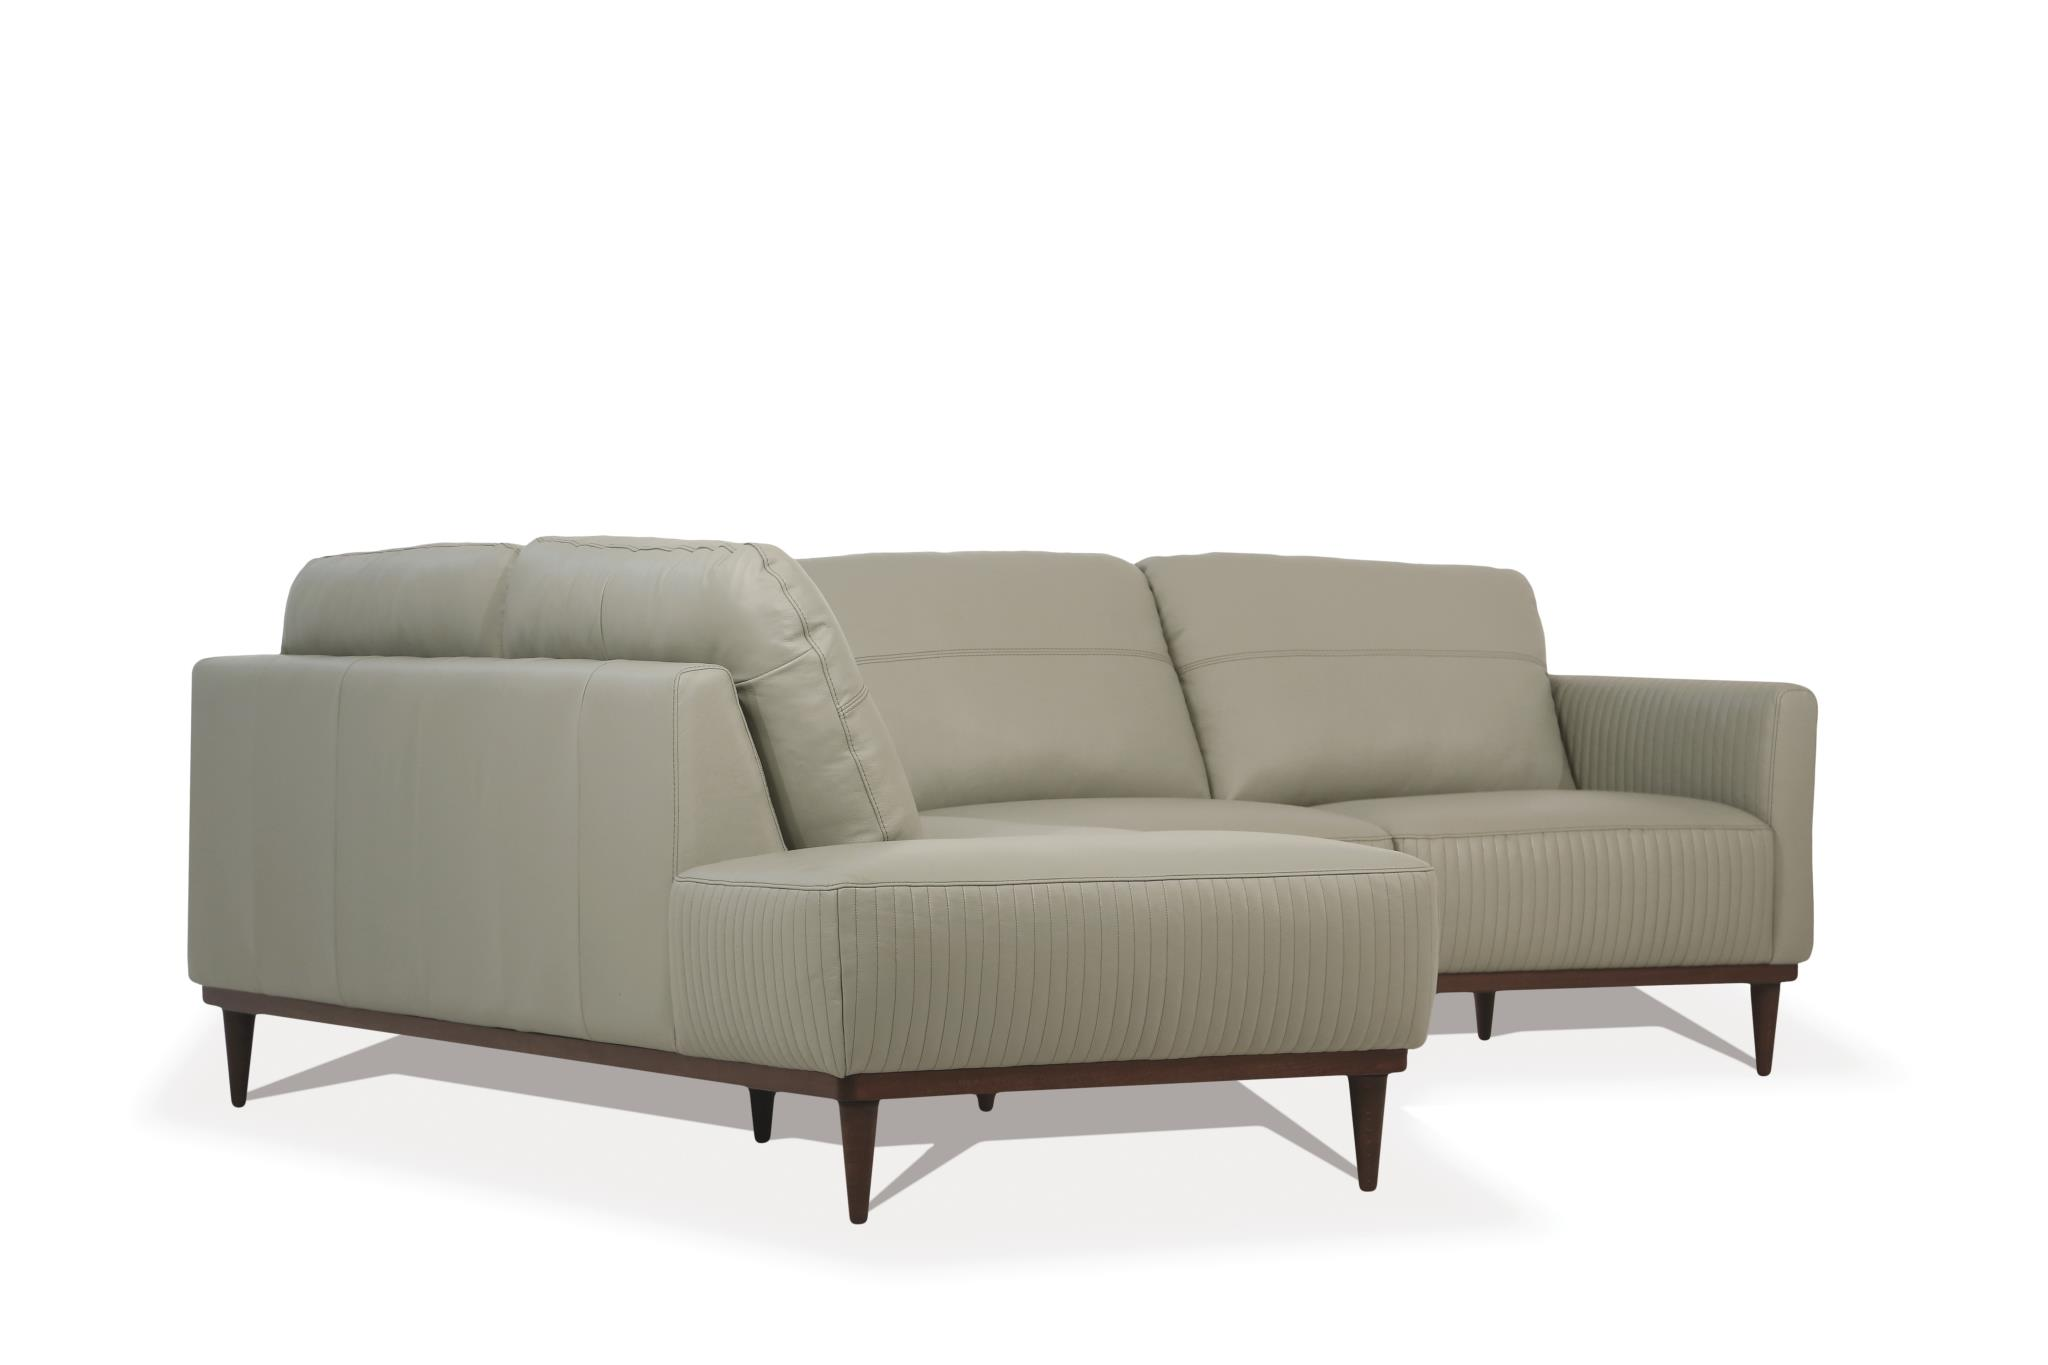 Airy Green Sectional Sofa w/ Left Facing Chaise Side Angle